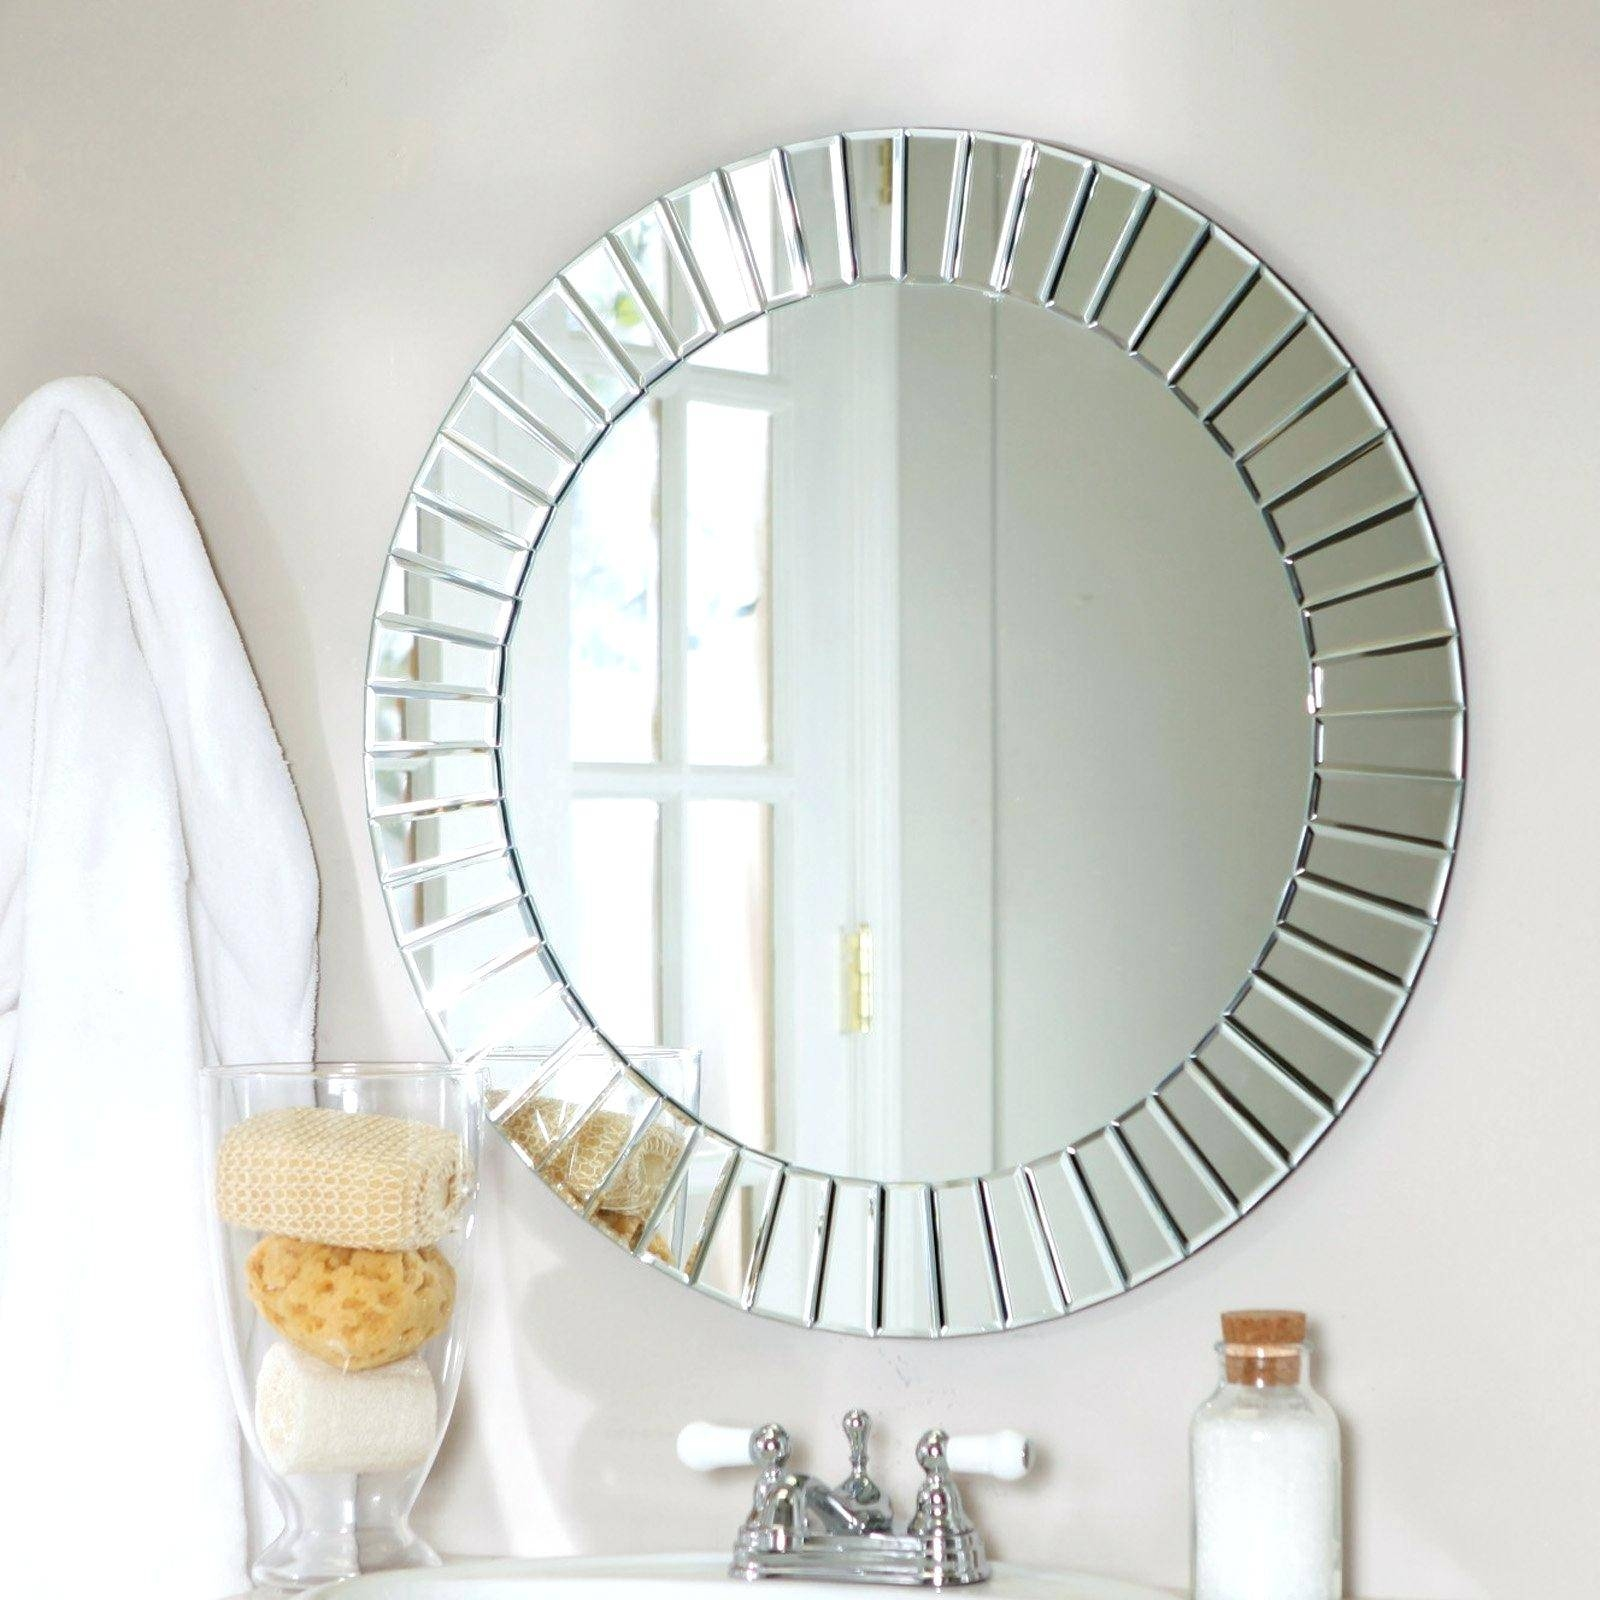 Wall Mirror ~ Full Length Wall Mirror Without Frame Full Length inside Wall Mirrors Without Frame (Image 15 of 15)